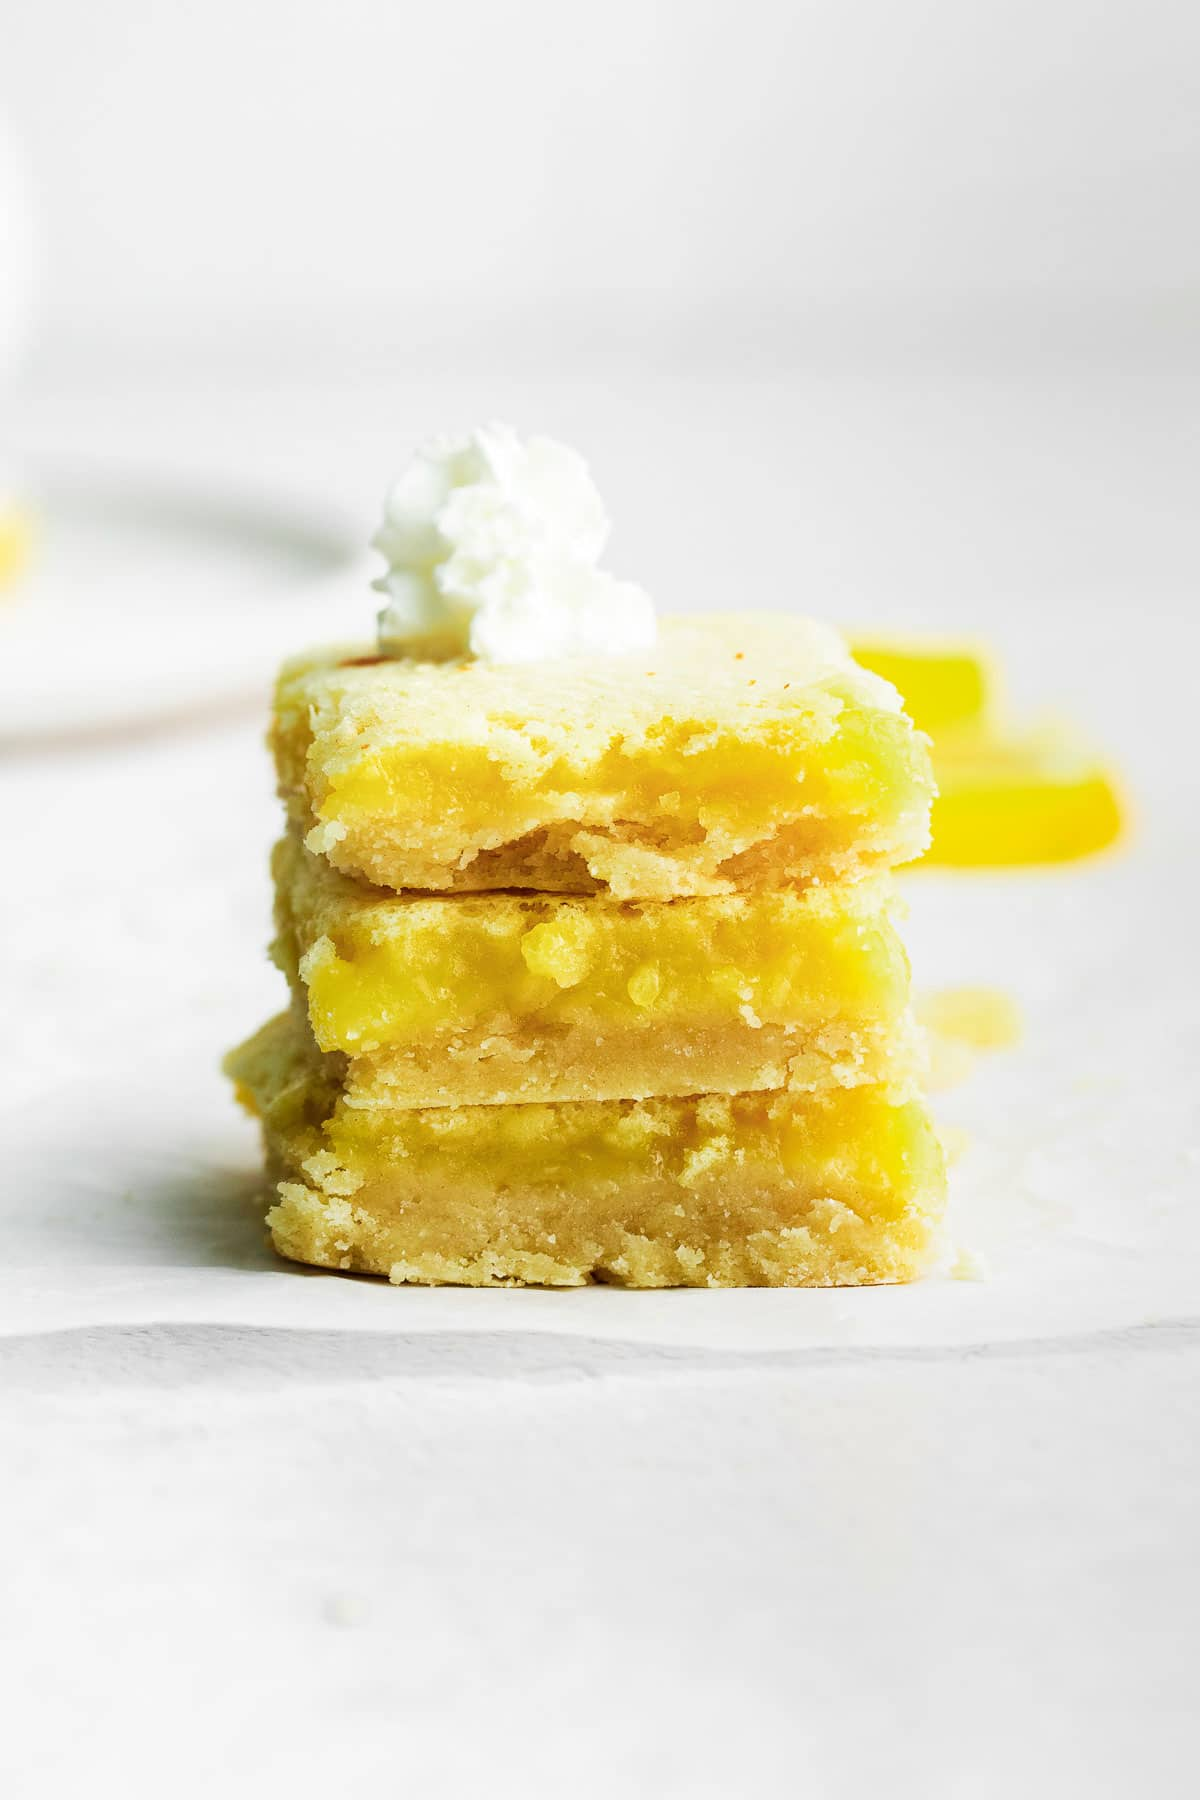 Three Lemon Squares stacked on top of each other with glass of milk and baking dish in background